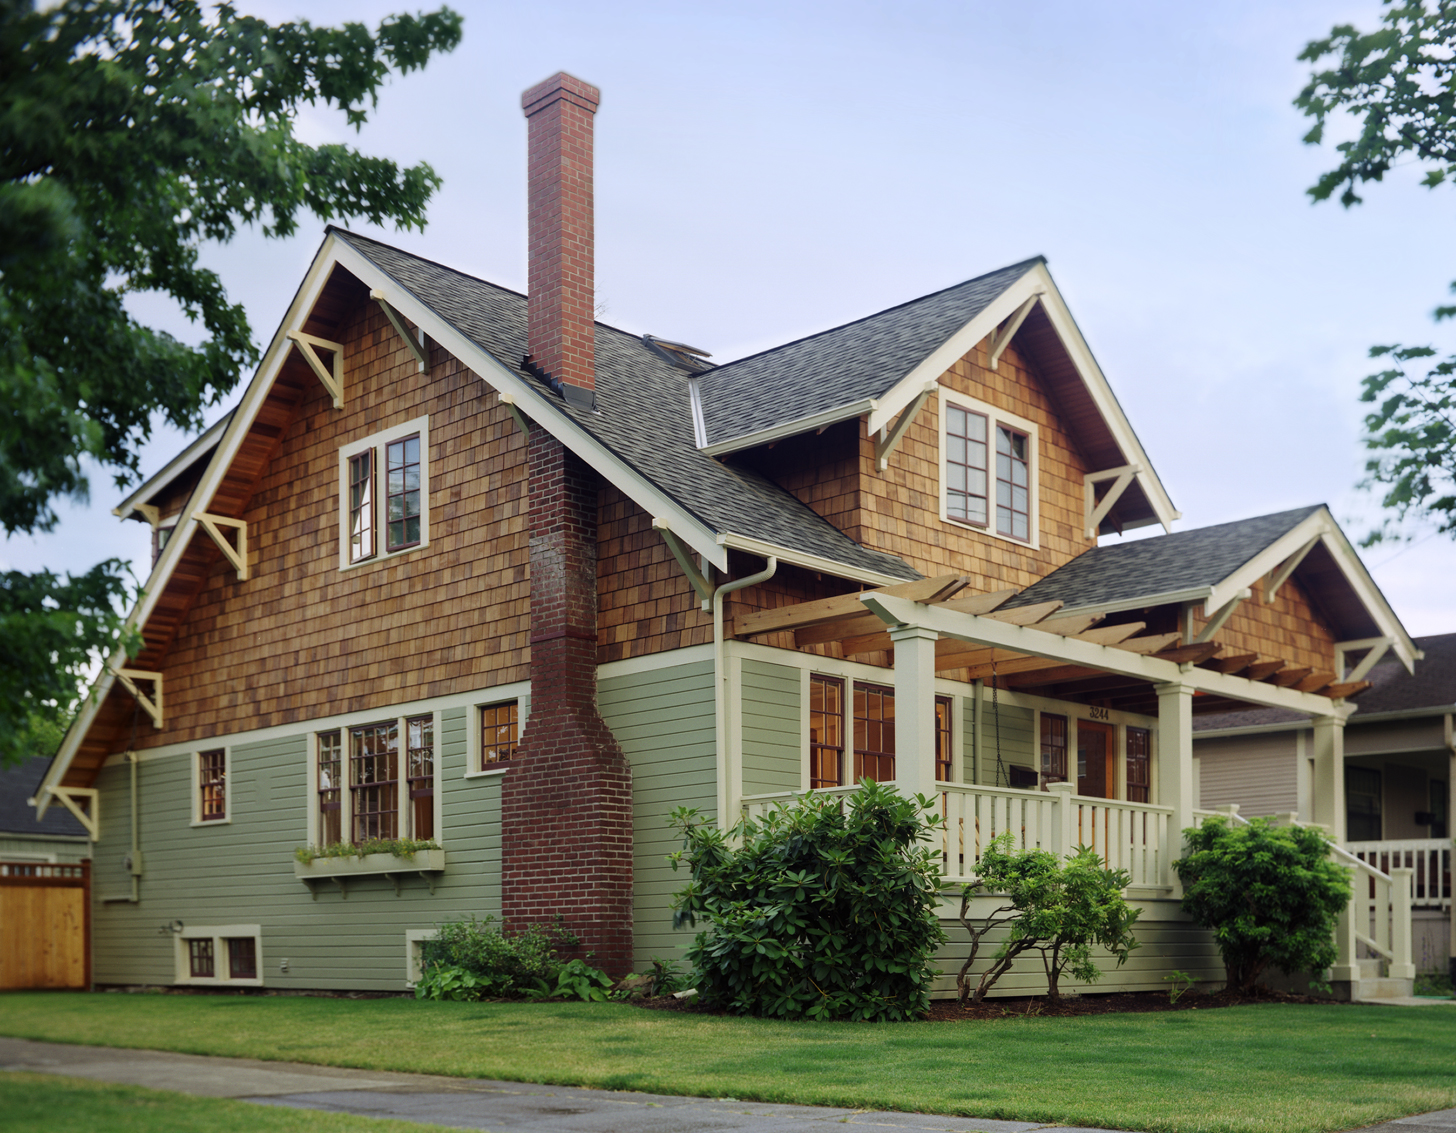 Seven home styles of the pacific northwest illustrated by for Exterior home redesign